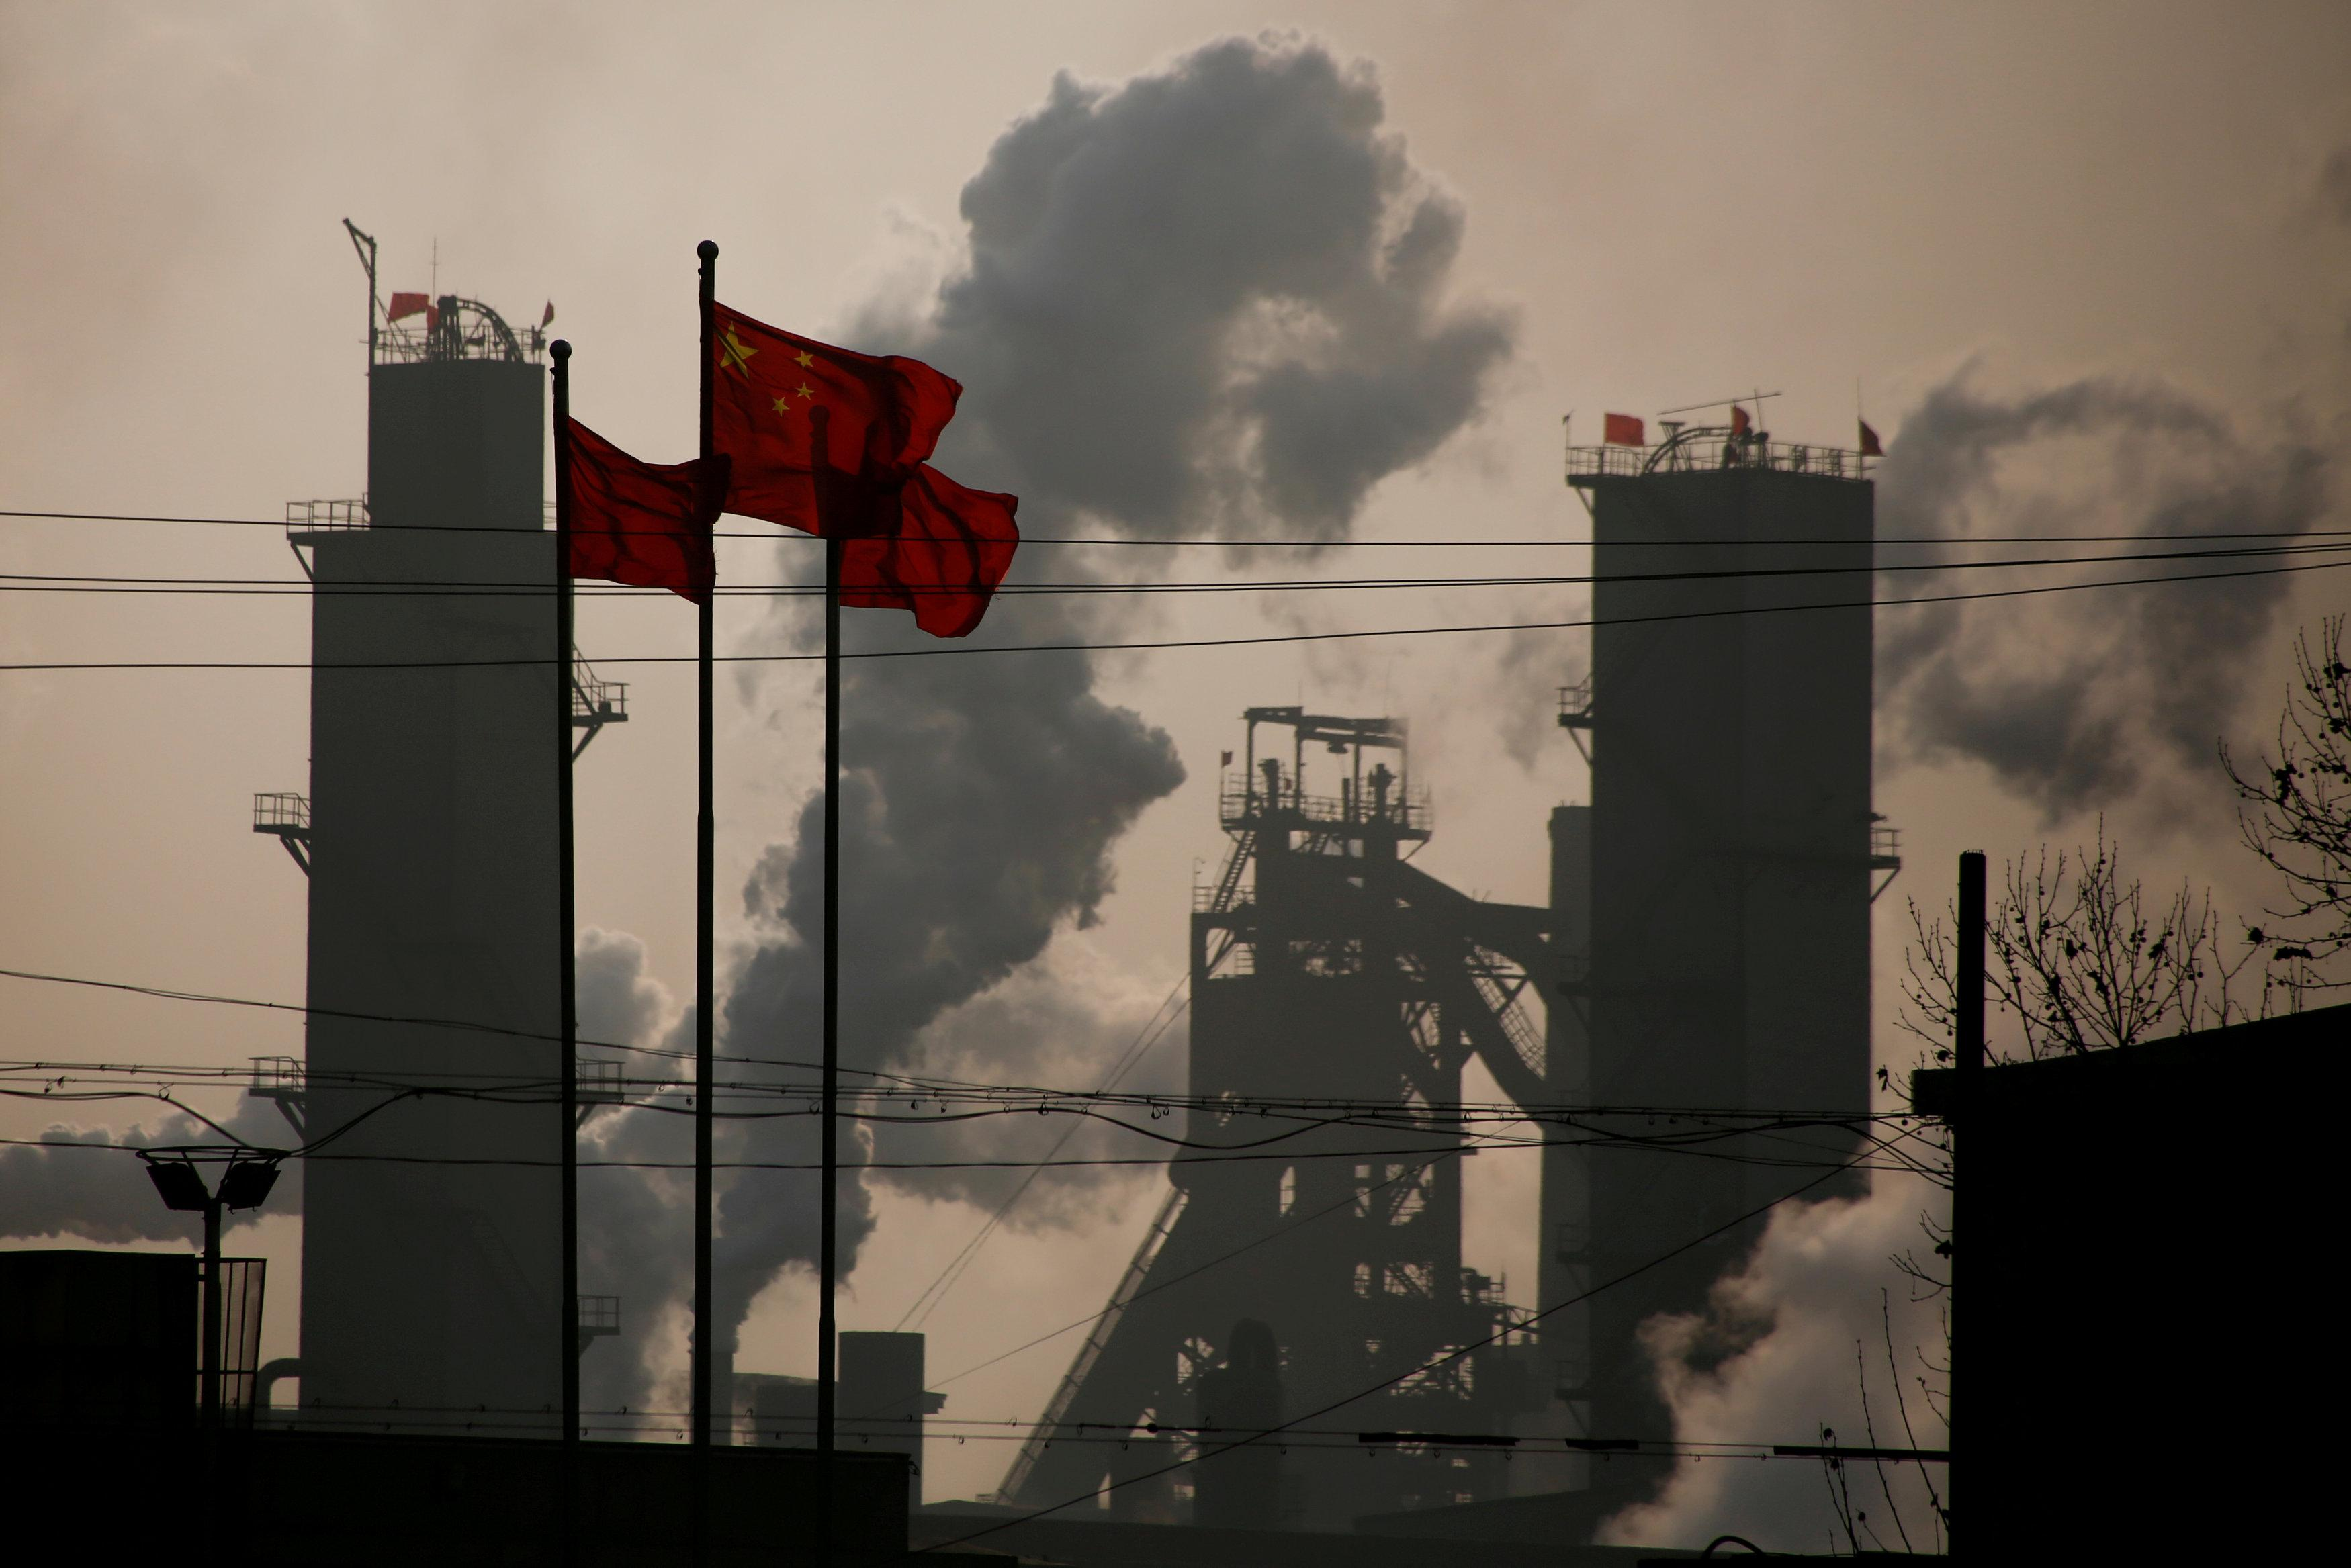 Chinese national flags are flying near a steel factory in Wu'an, Hebei province, China, February 23, 2017.  Thomas Peter